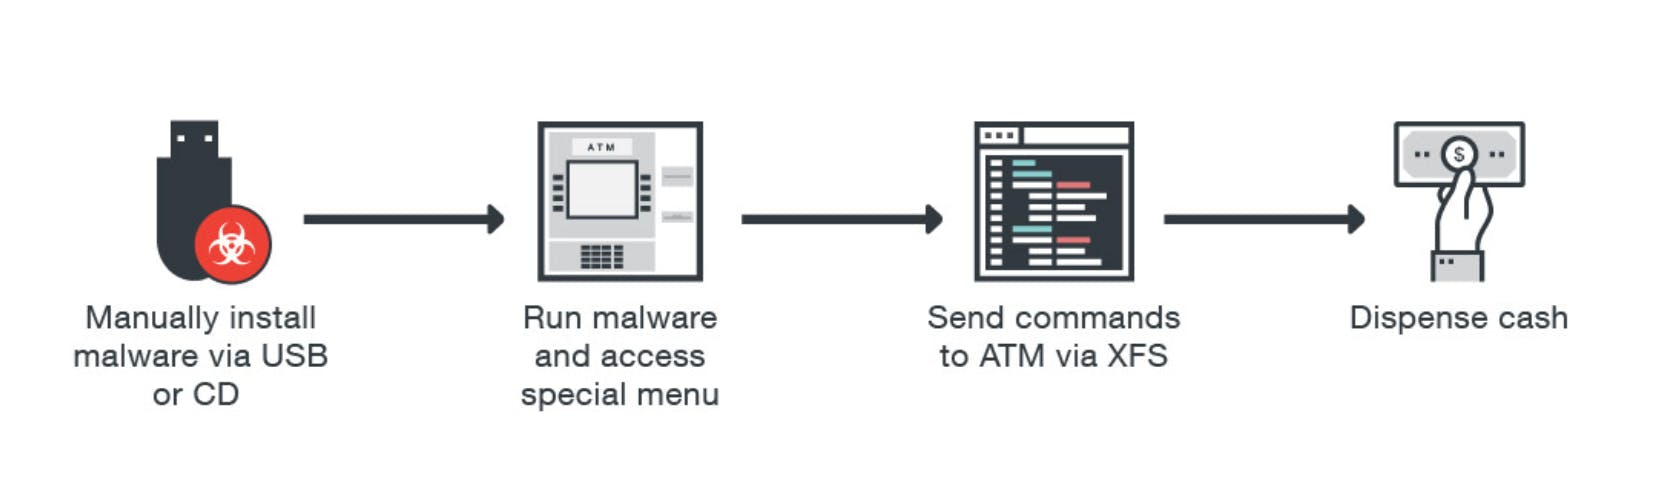 atm physical attack steps for hackers